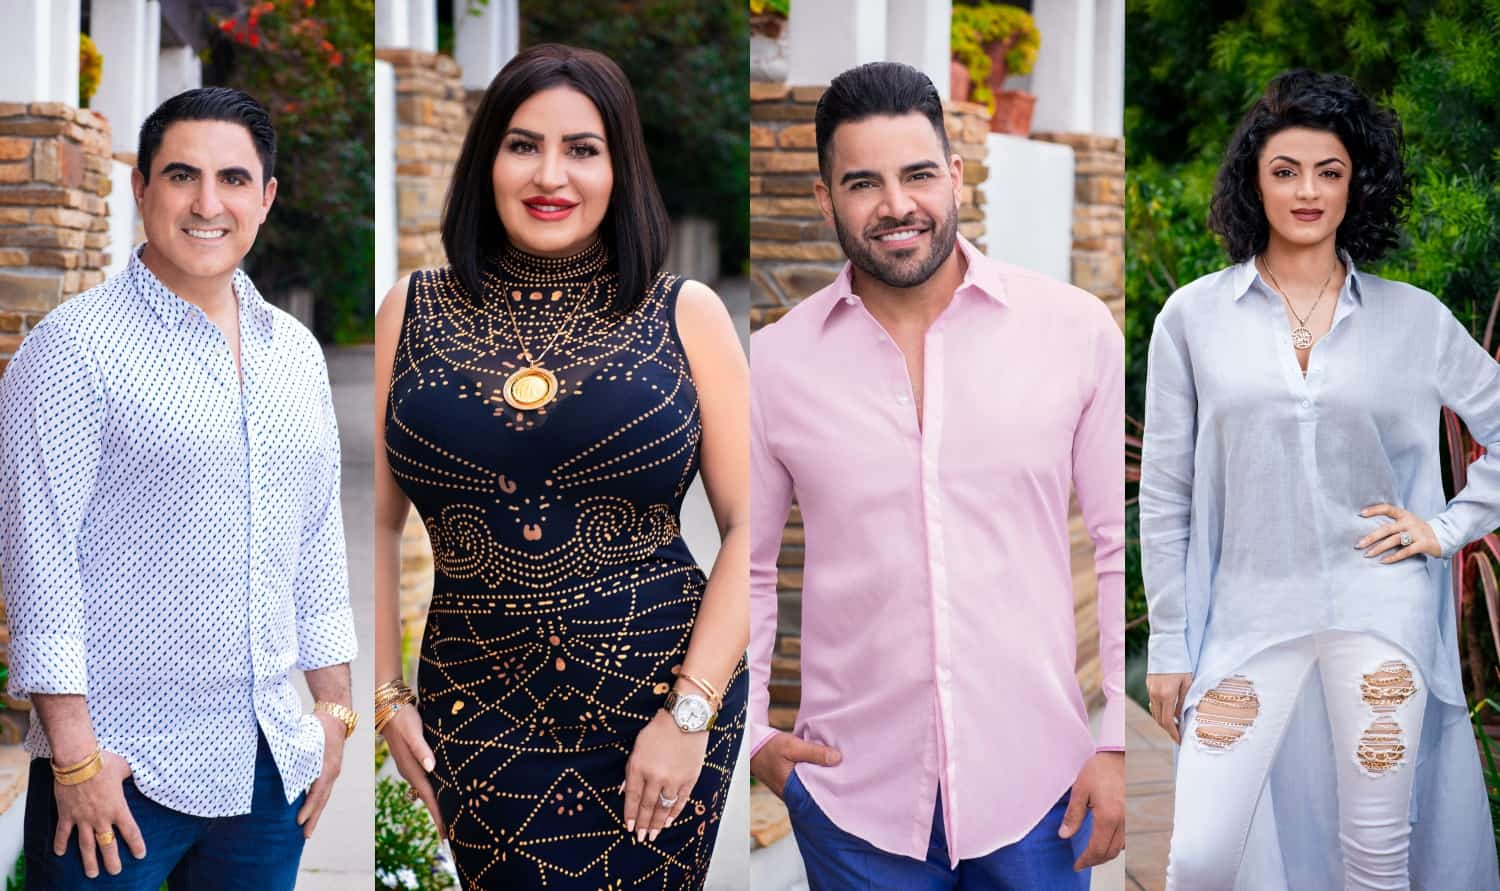 Shahs of Sunset Season 7 Cast Photo - Reza, MJ, Mike, and GG